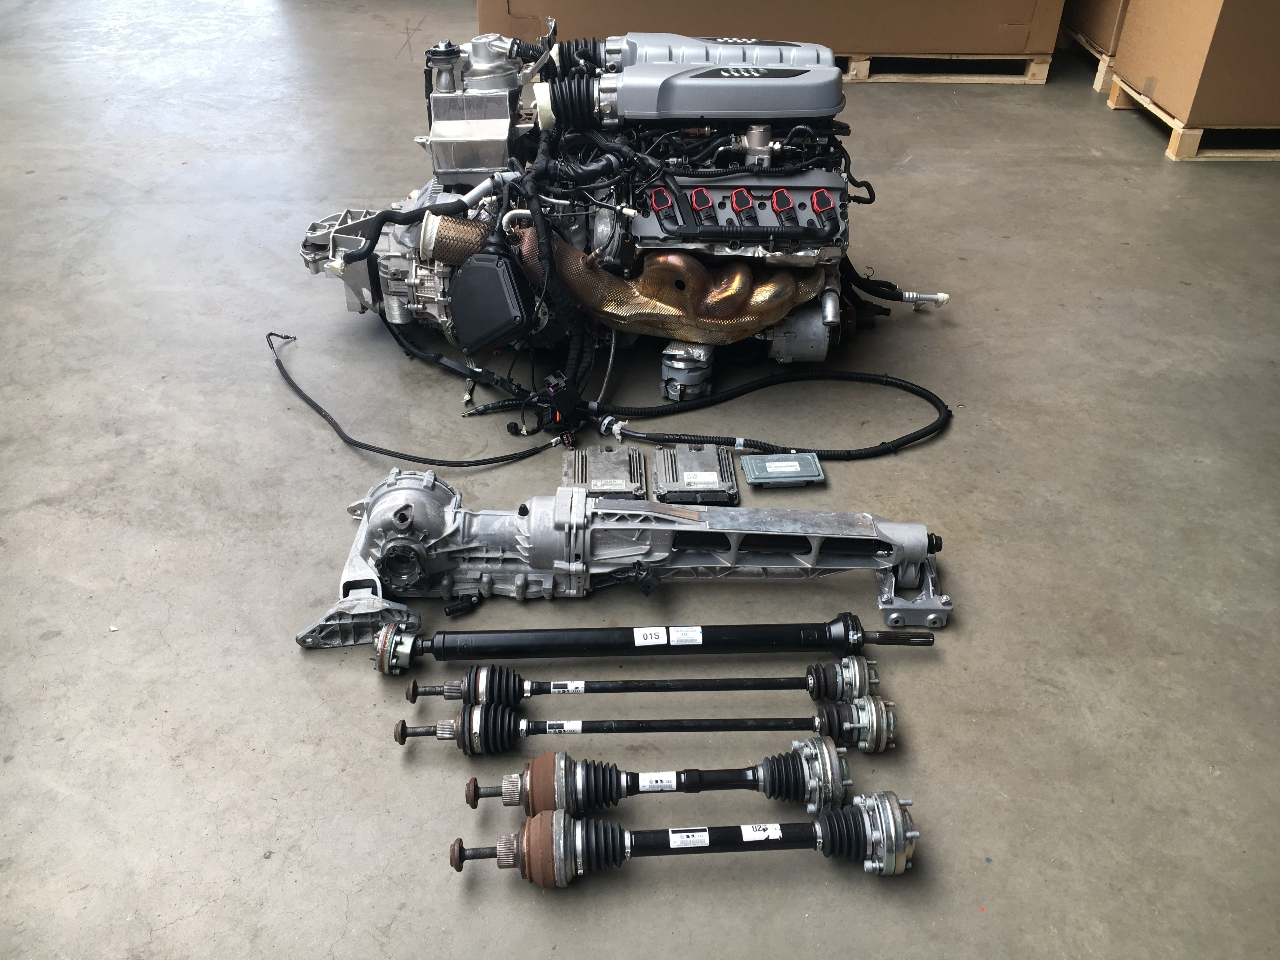 csp cspb motor moteur engine rmp dsg gearbox conversion kit audi r8 4s ebay. Black Bedroom Furniture Sets. Home Design Ideas